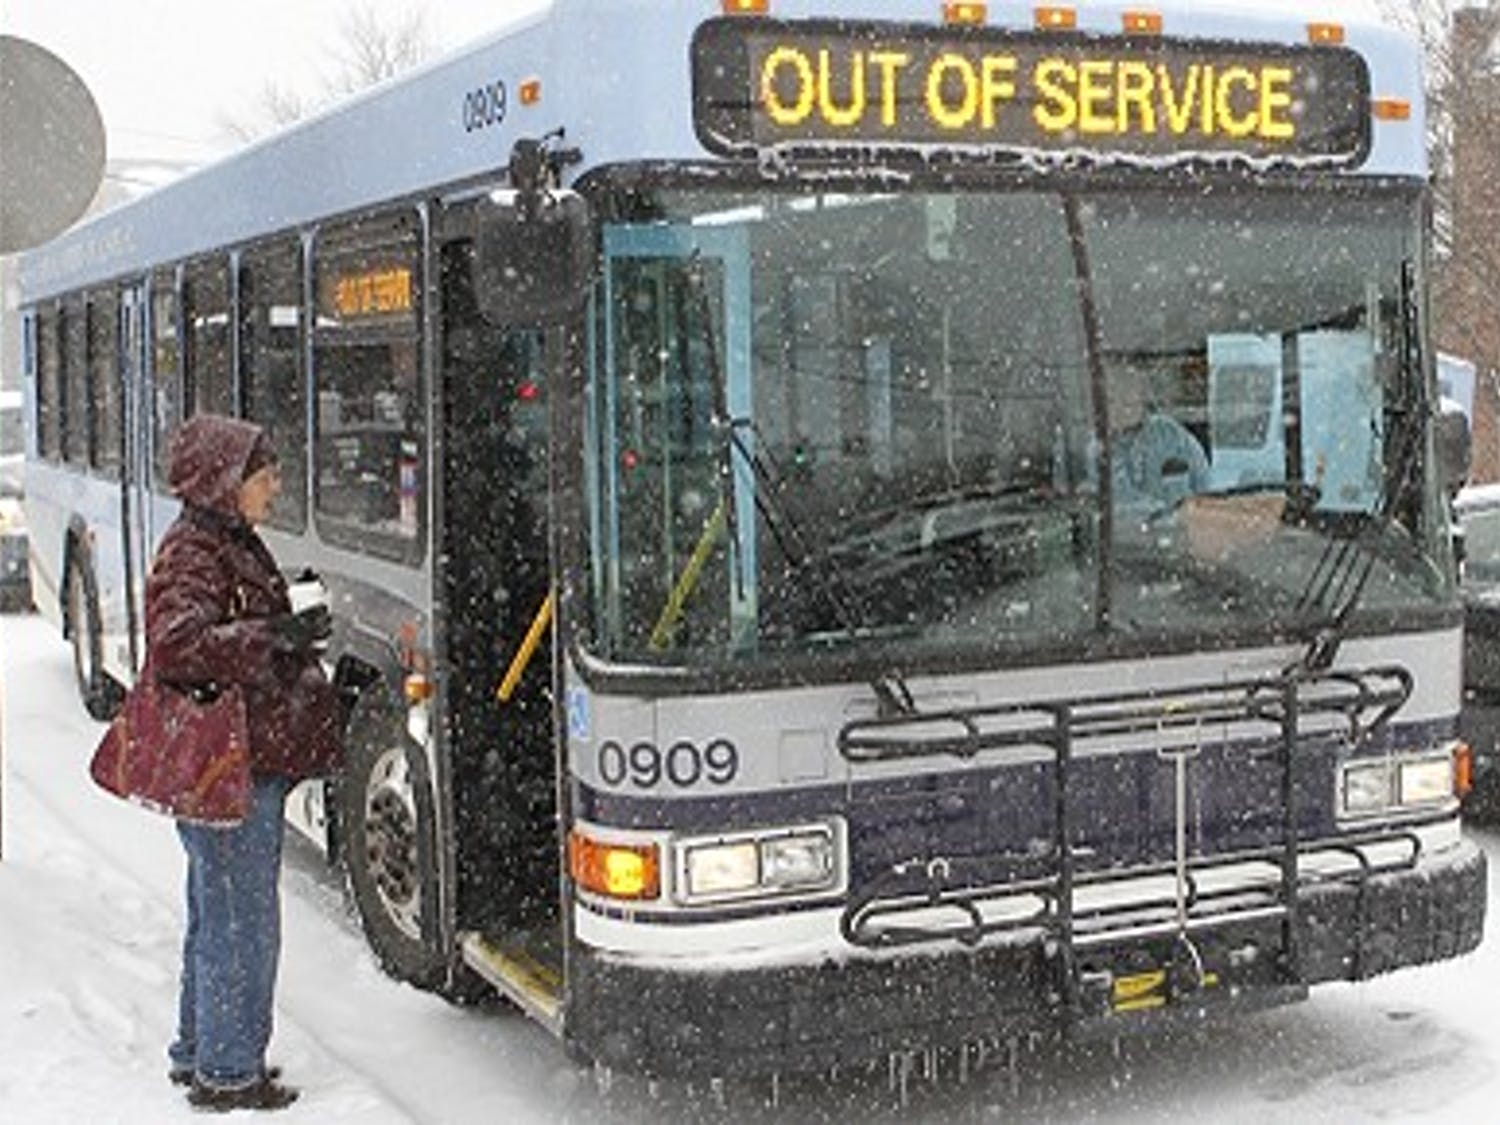 Heavy snow fall leaves busses closed and the Duke Basketball game postponed on Feb 12, 2014.